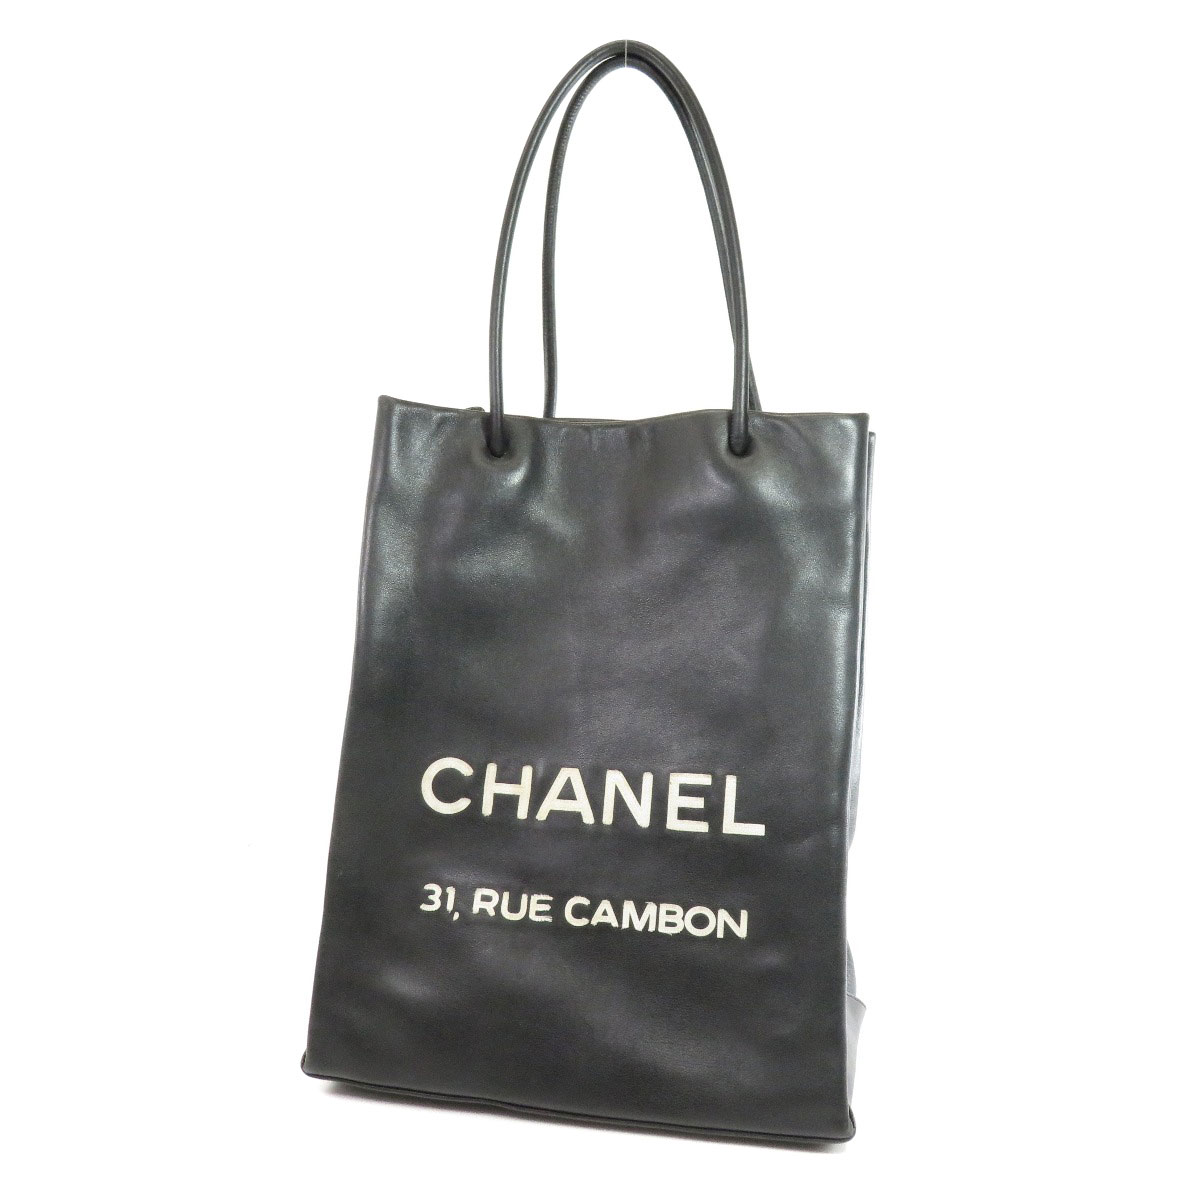 b2aa609f0876 CHANEL-Tote Bag Leather Women ー The best place to buy Brand ...